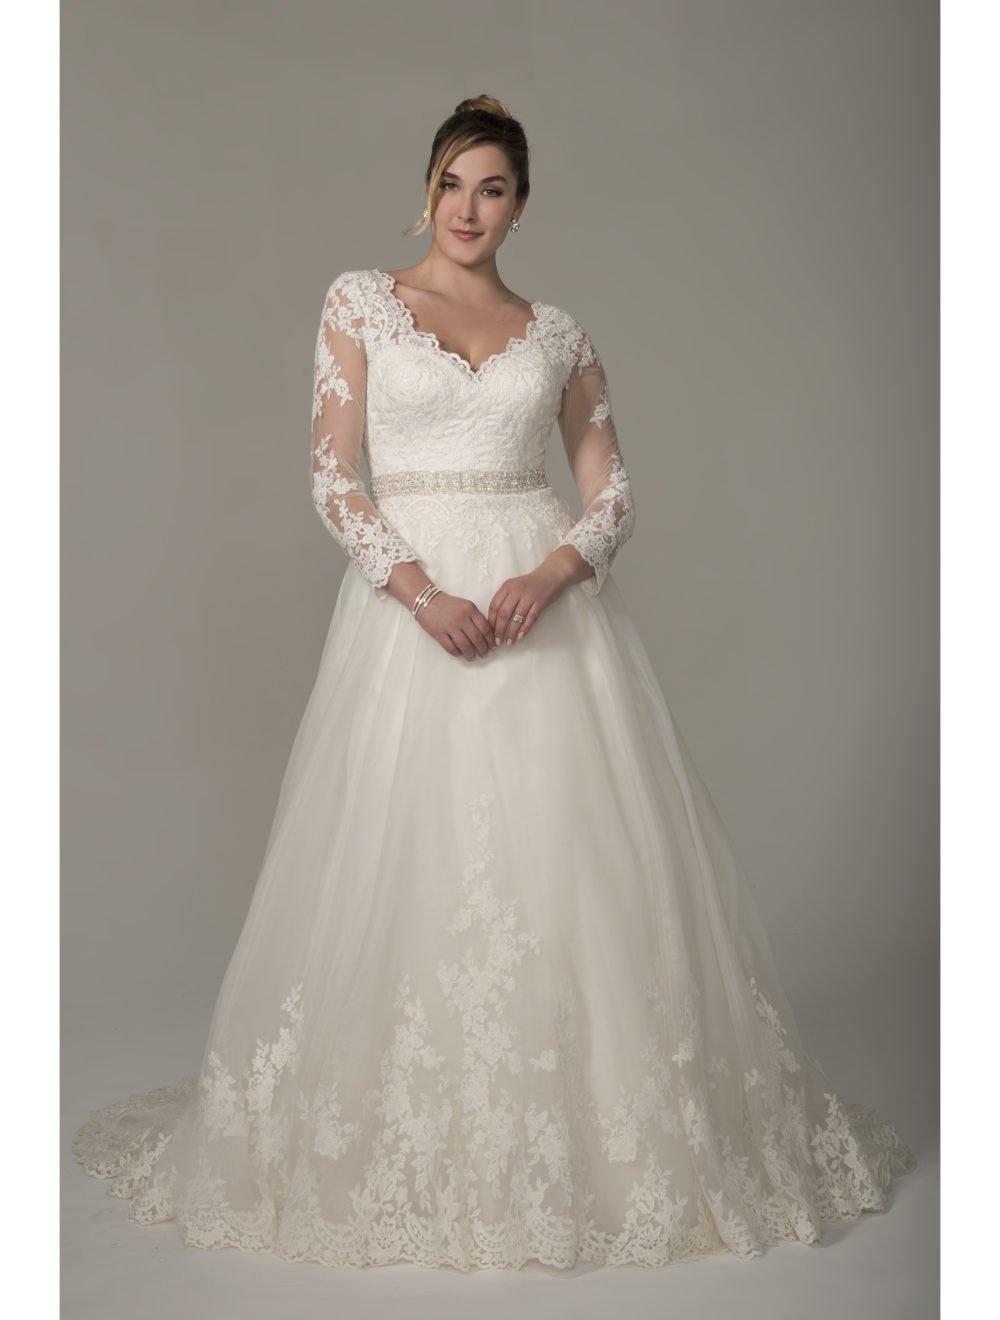 Buy 2017 plus size wedding dresses with for Wedding dresses for larger figures